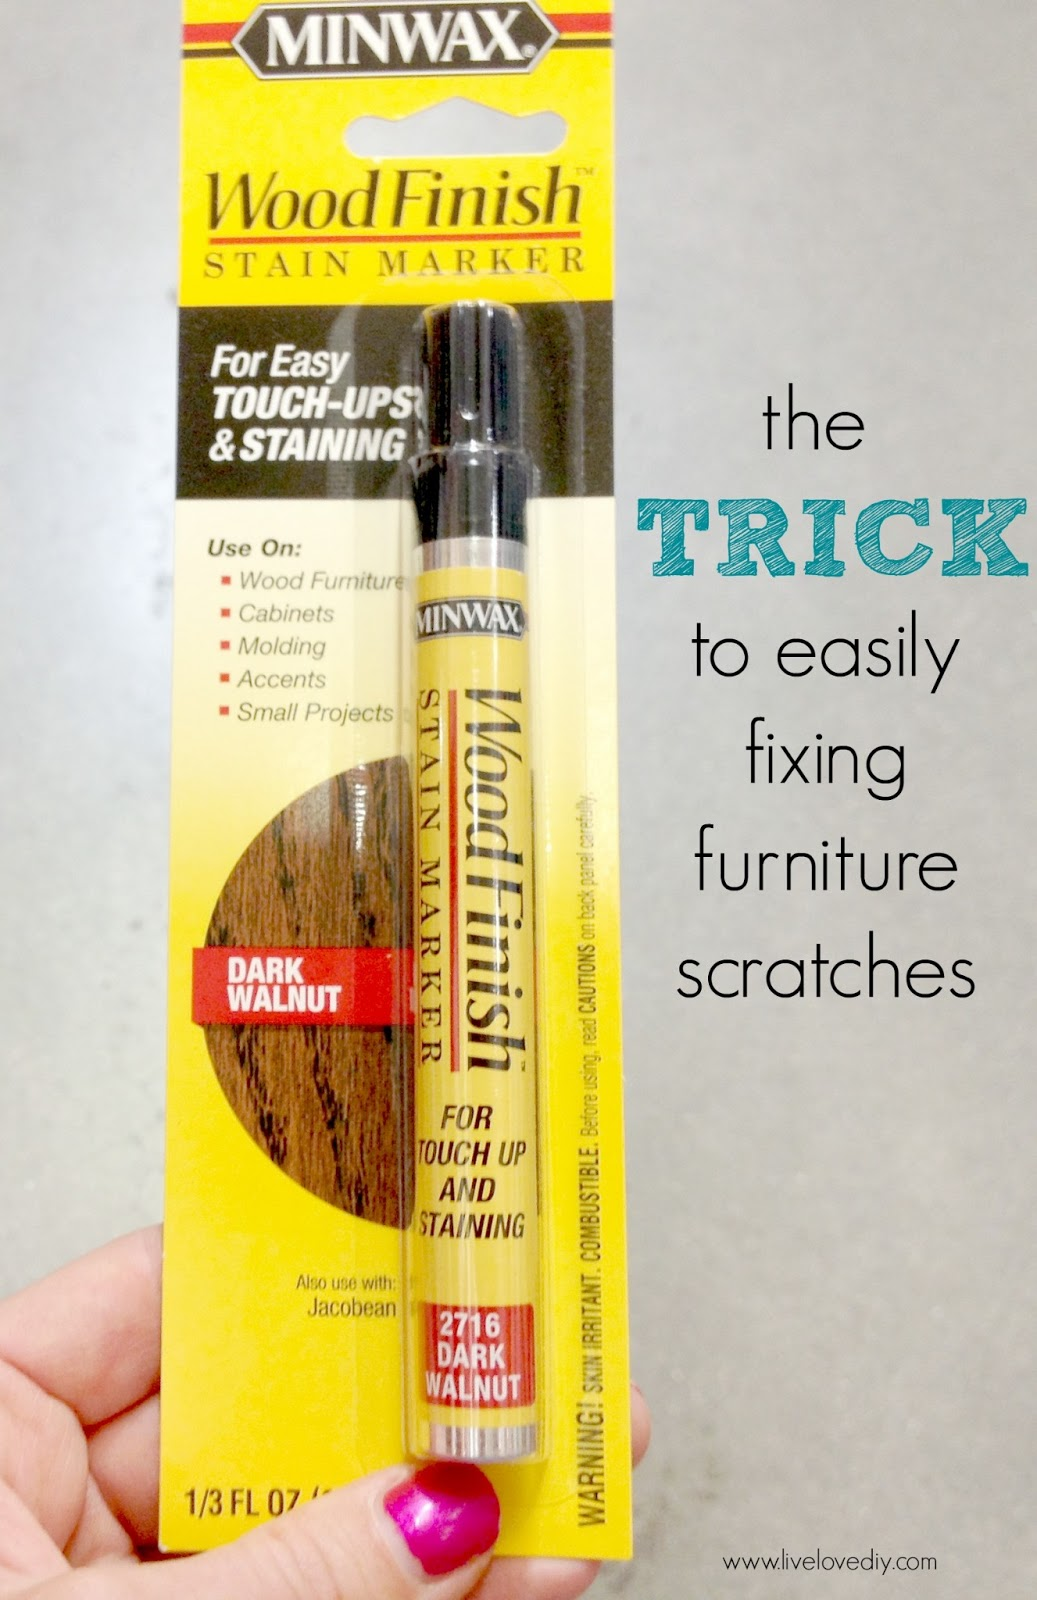 Livelovediy 10 Painting Tips Tricks You Never Knew Part Two